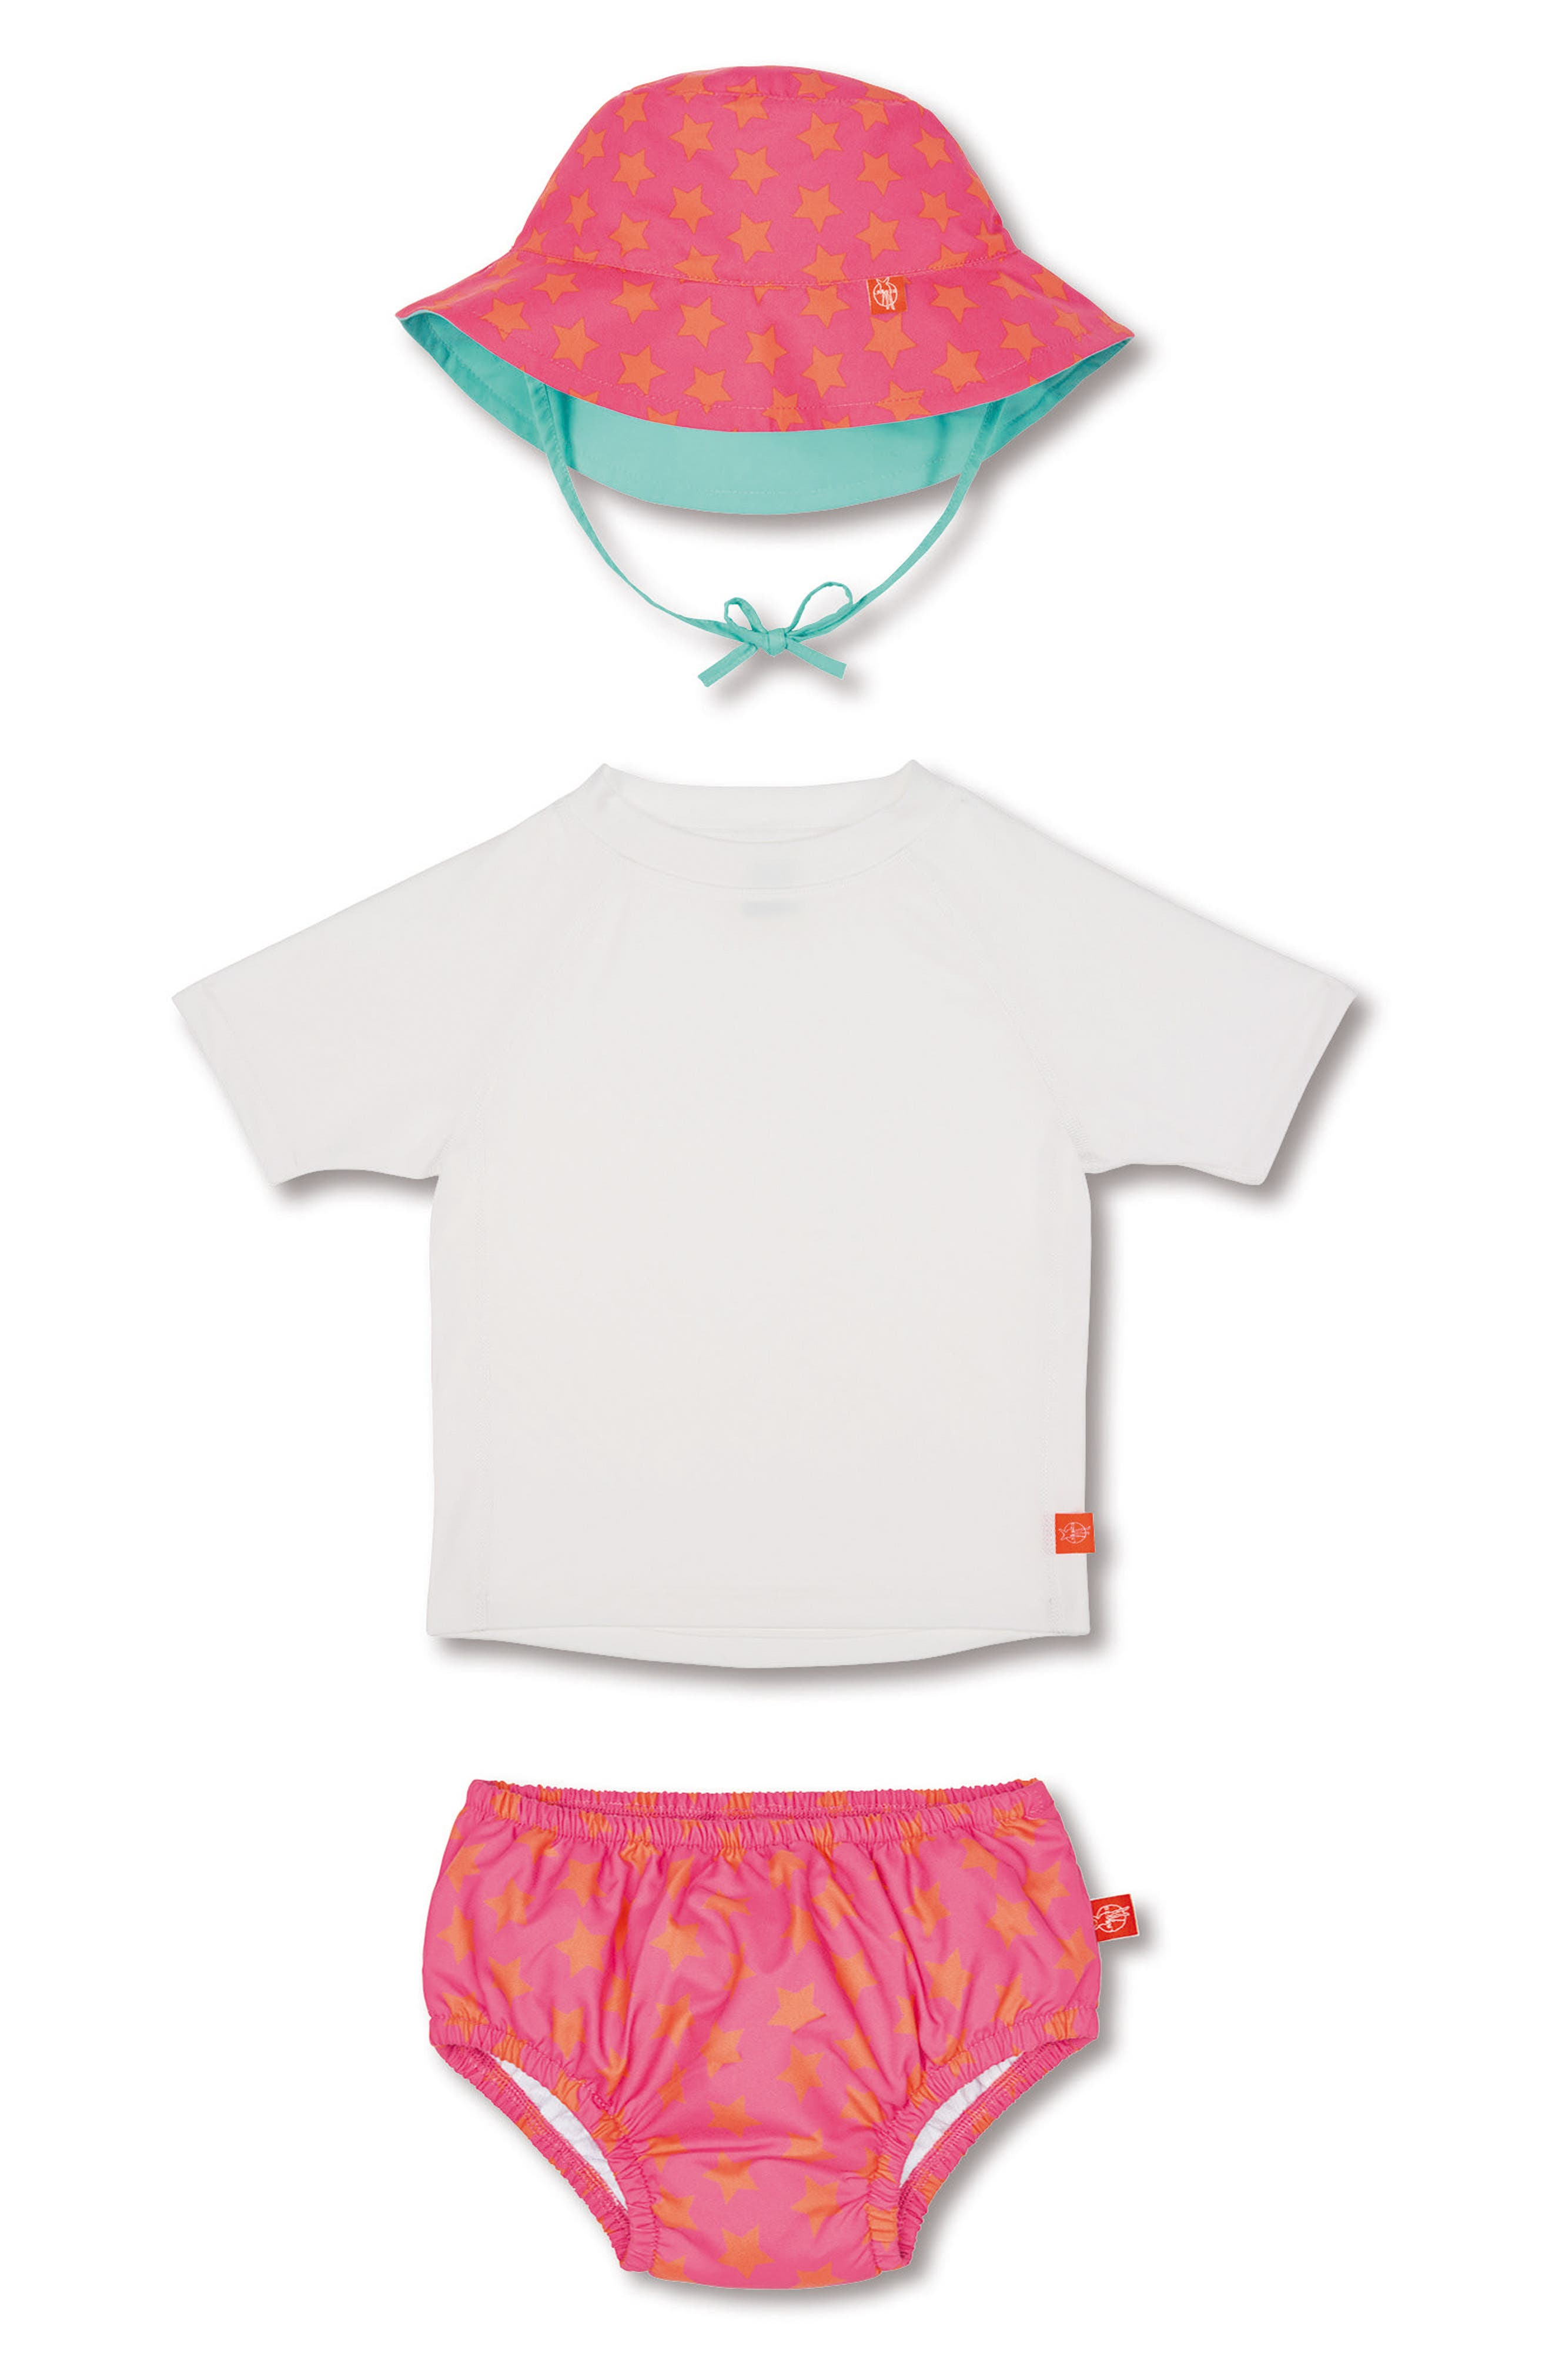 Alternate Image 1 Selected - Lassig Two-Piece Rashguard Swimsuit & Hat Set (Baby Girls & Toddler Girls)